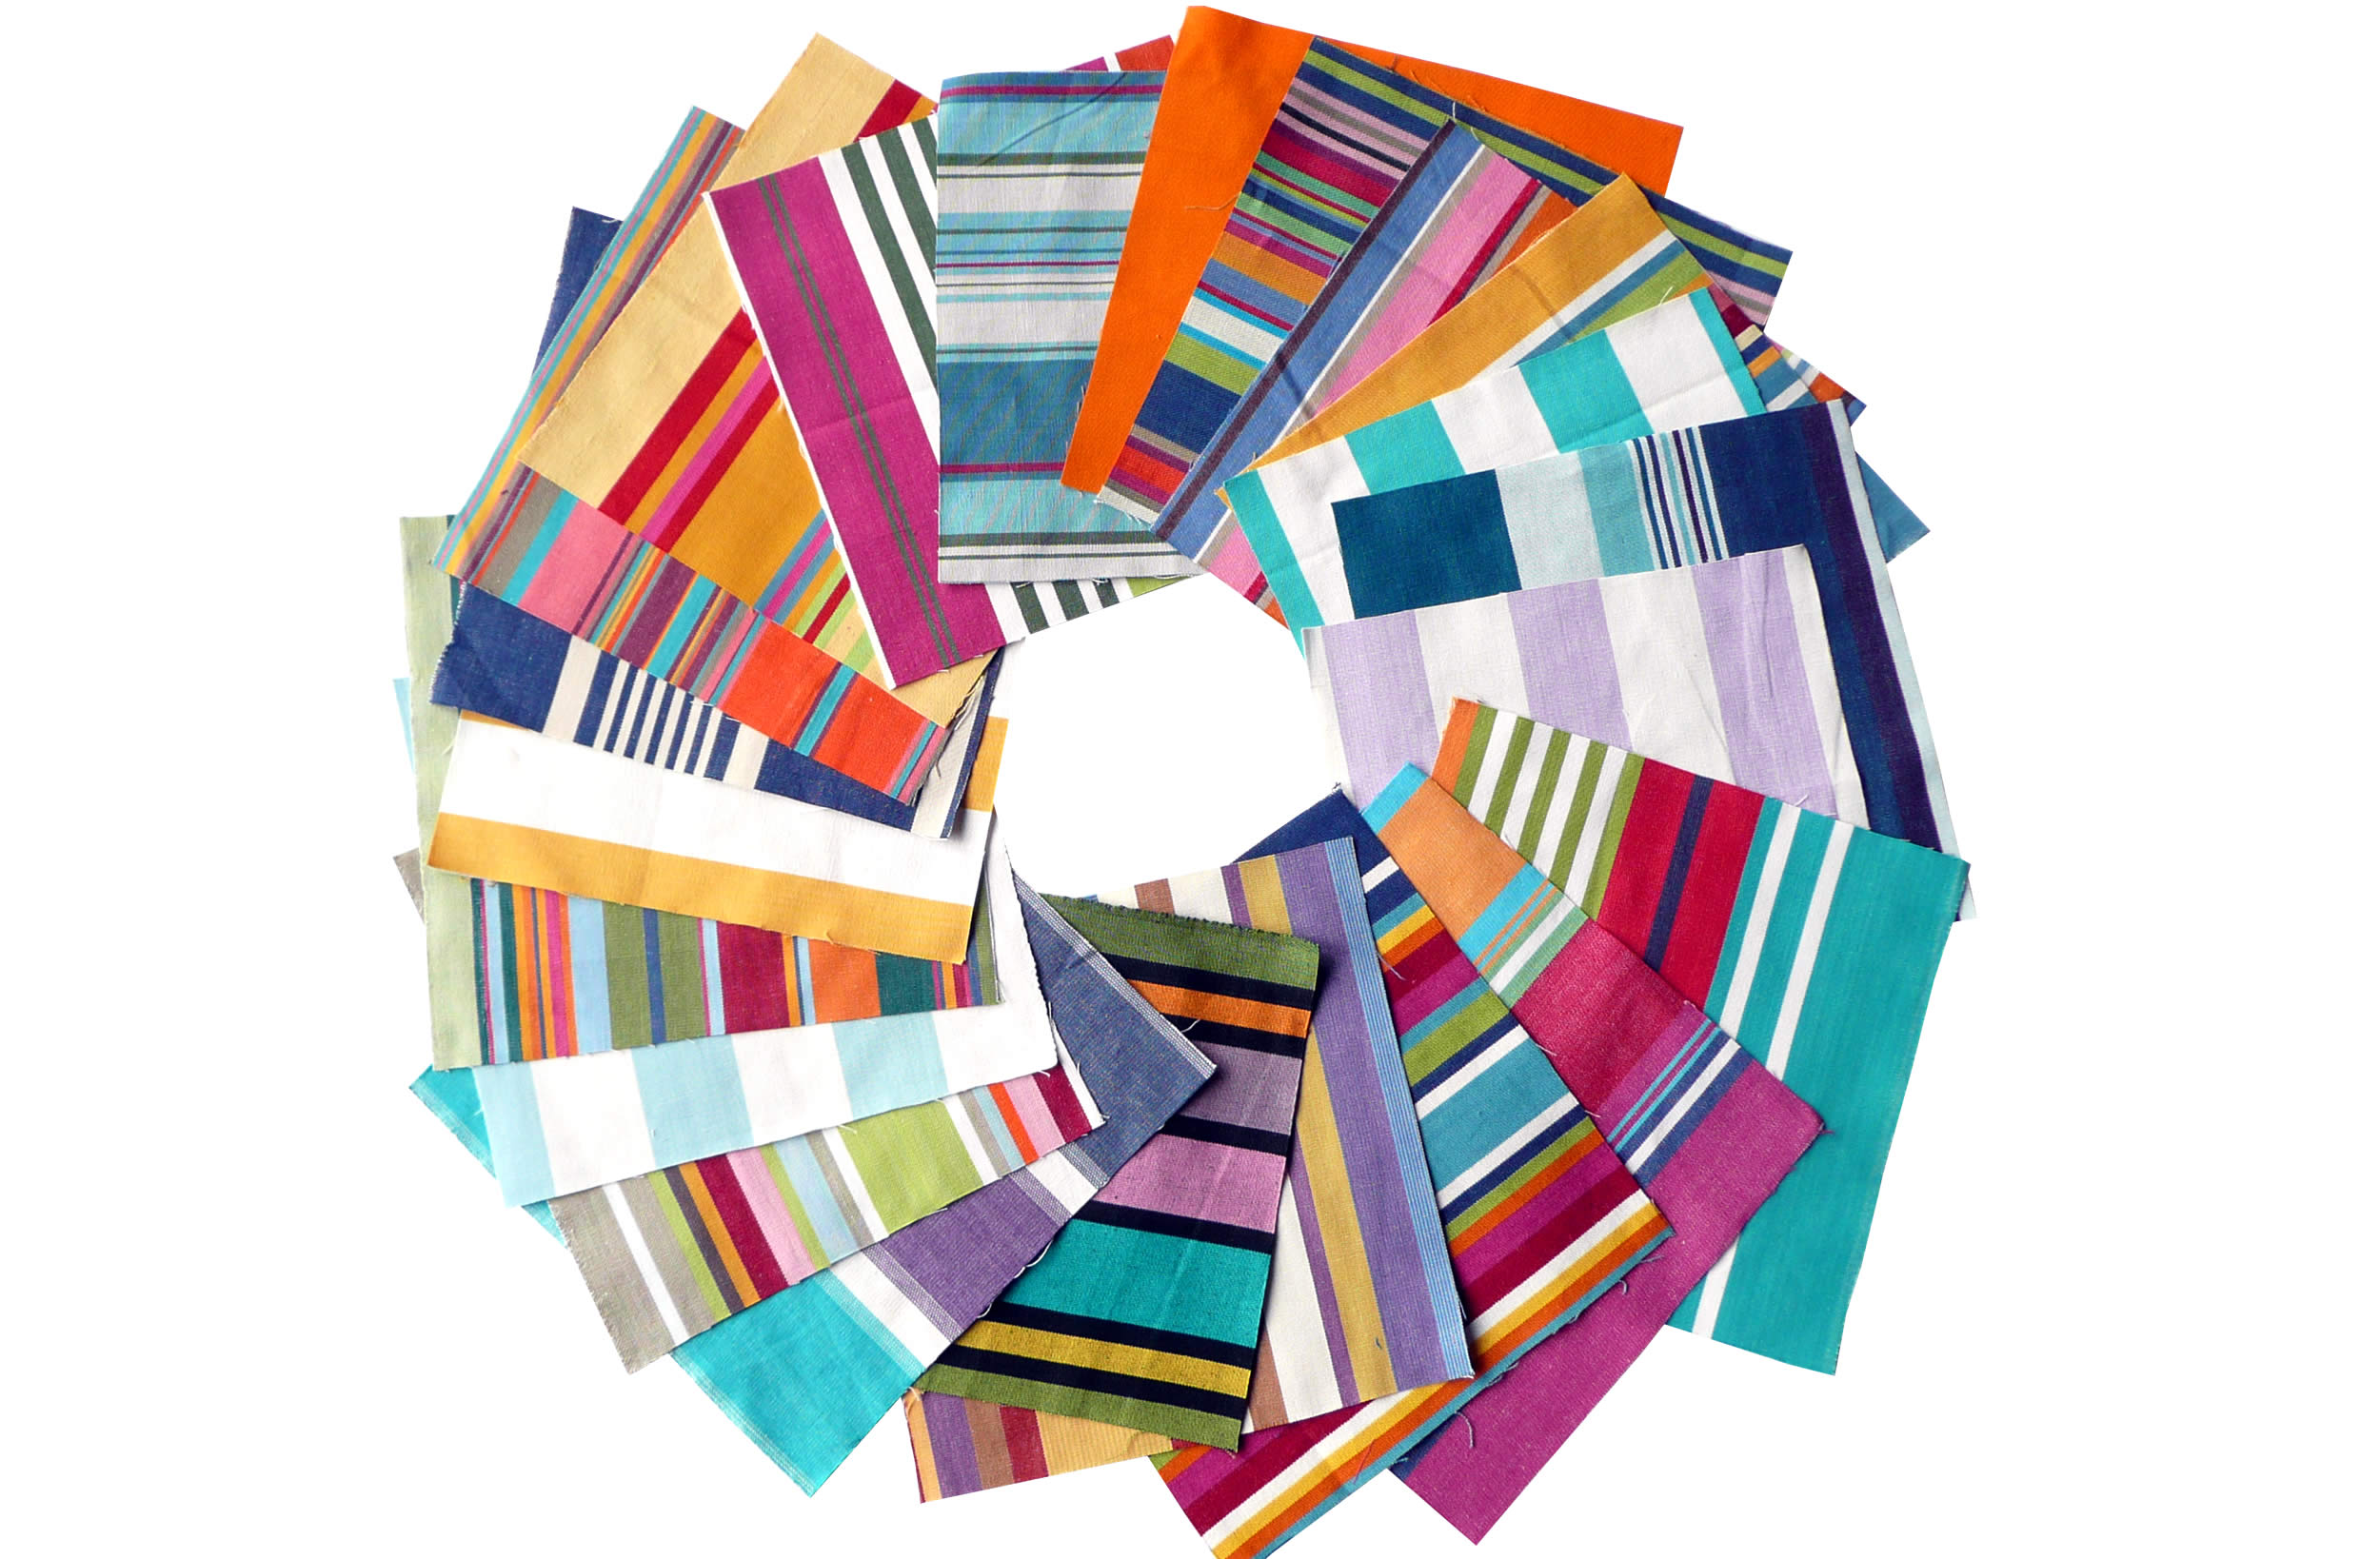 Bumper Pack of Striped Cotton Fabric Squares for Patchwork Quilting Crafters